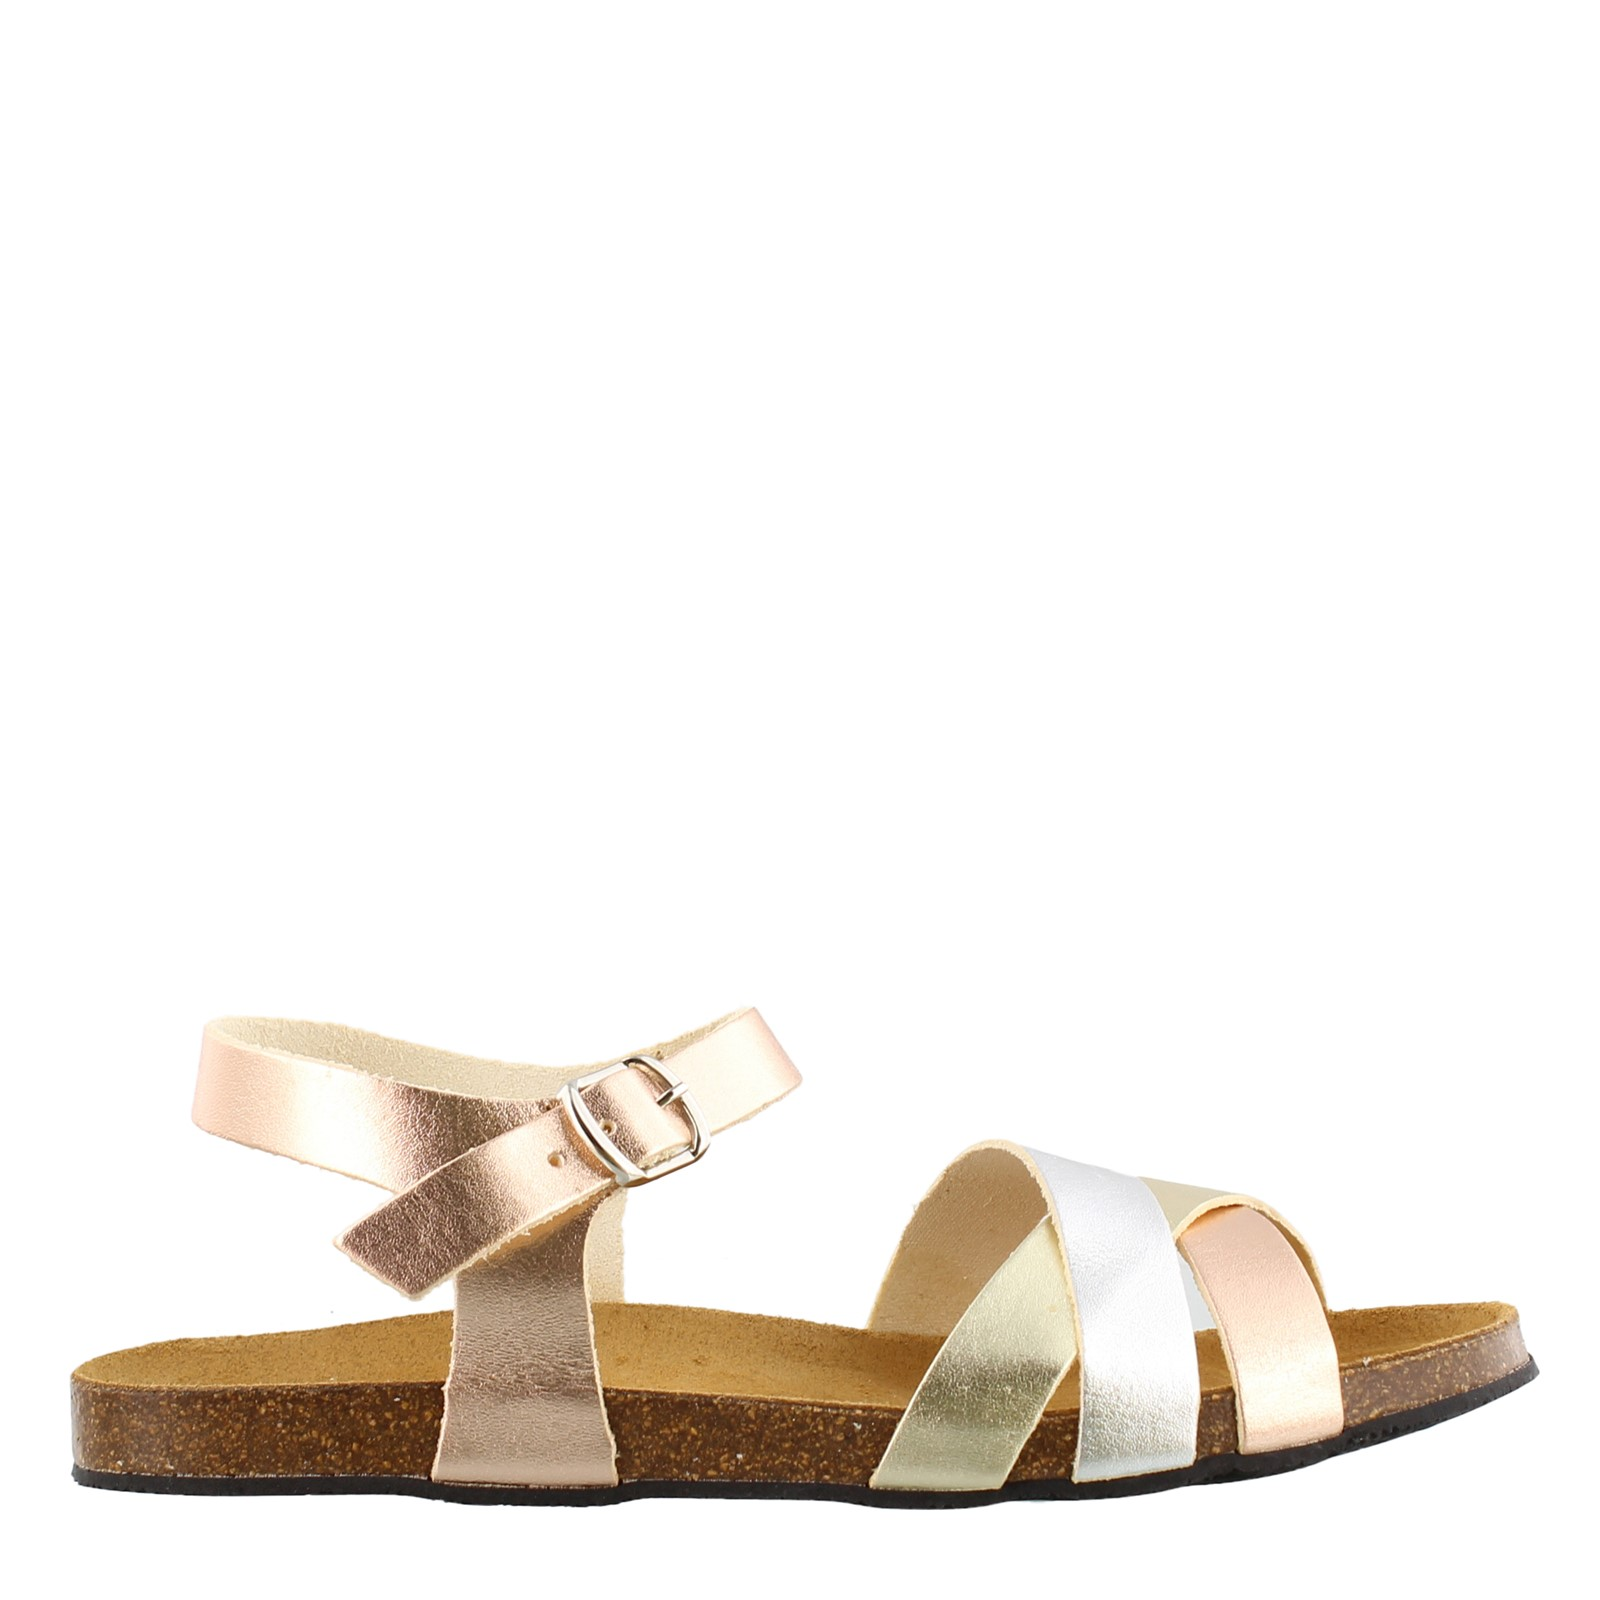 Women's Eric Michael, Erin Sandals